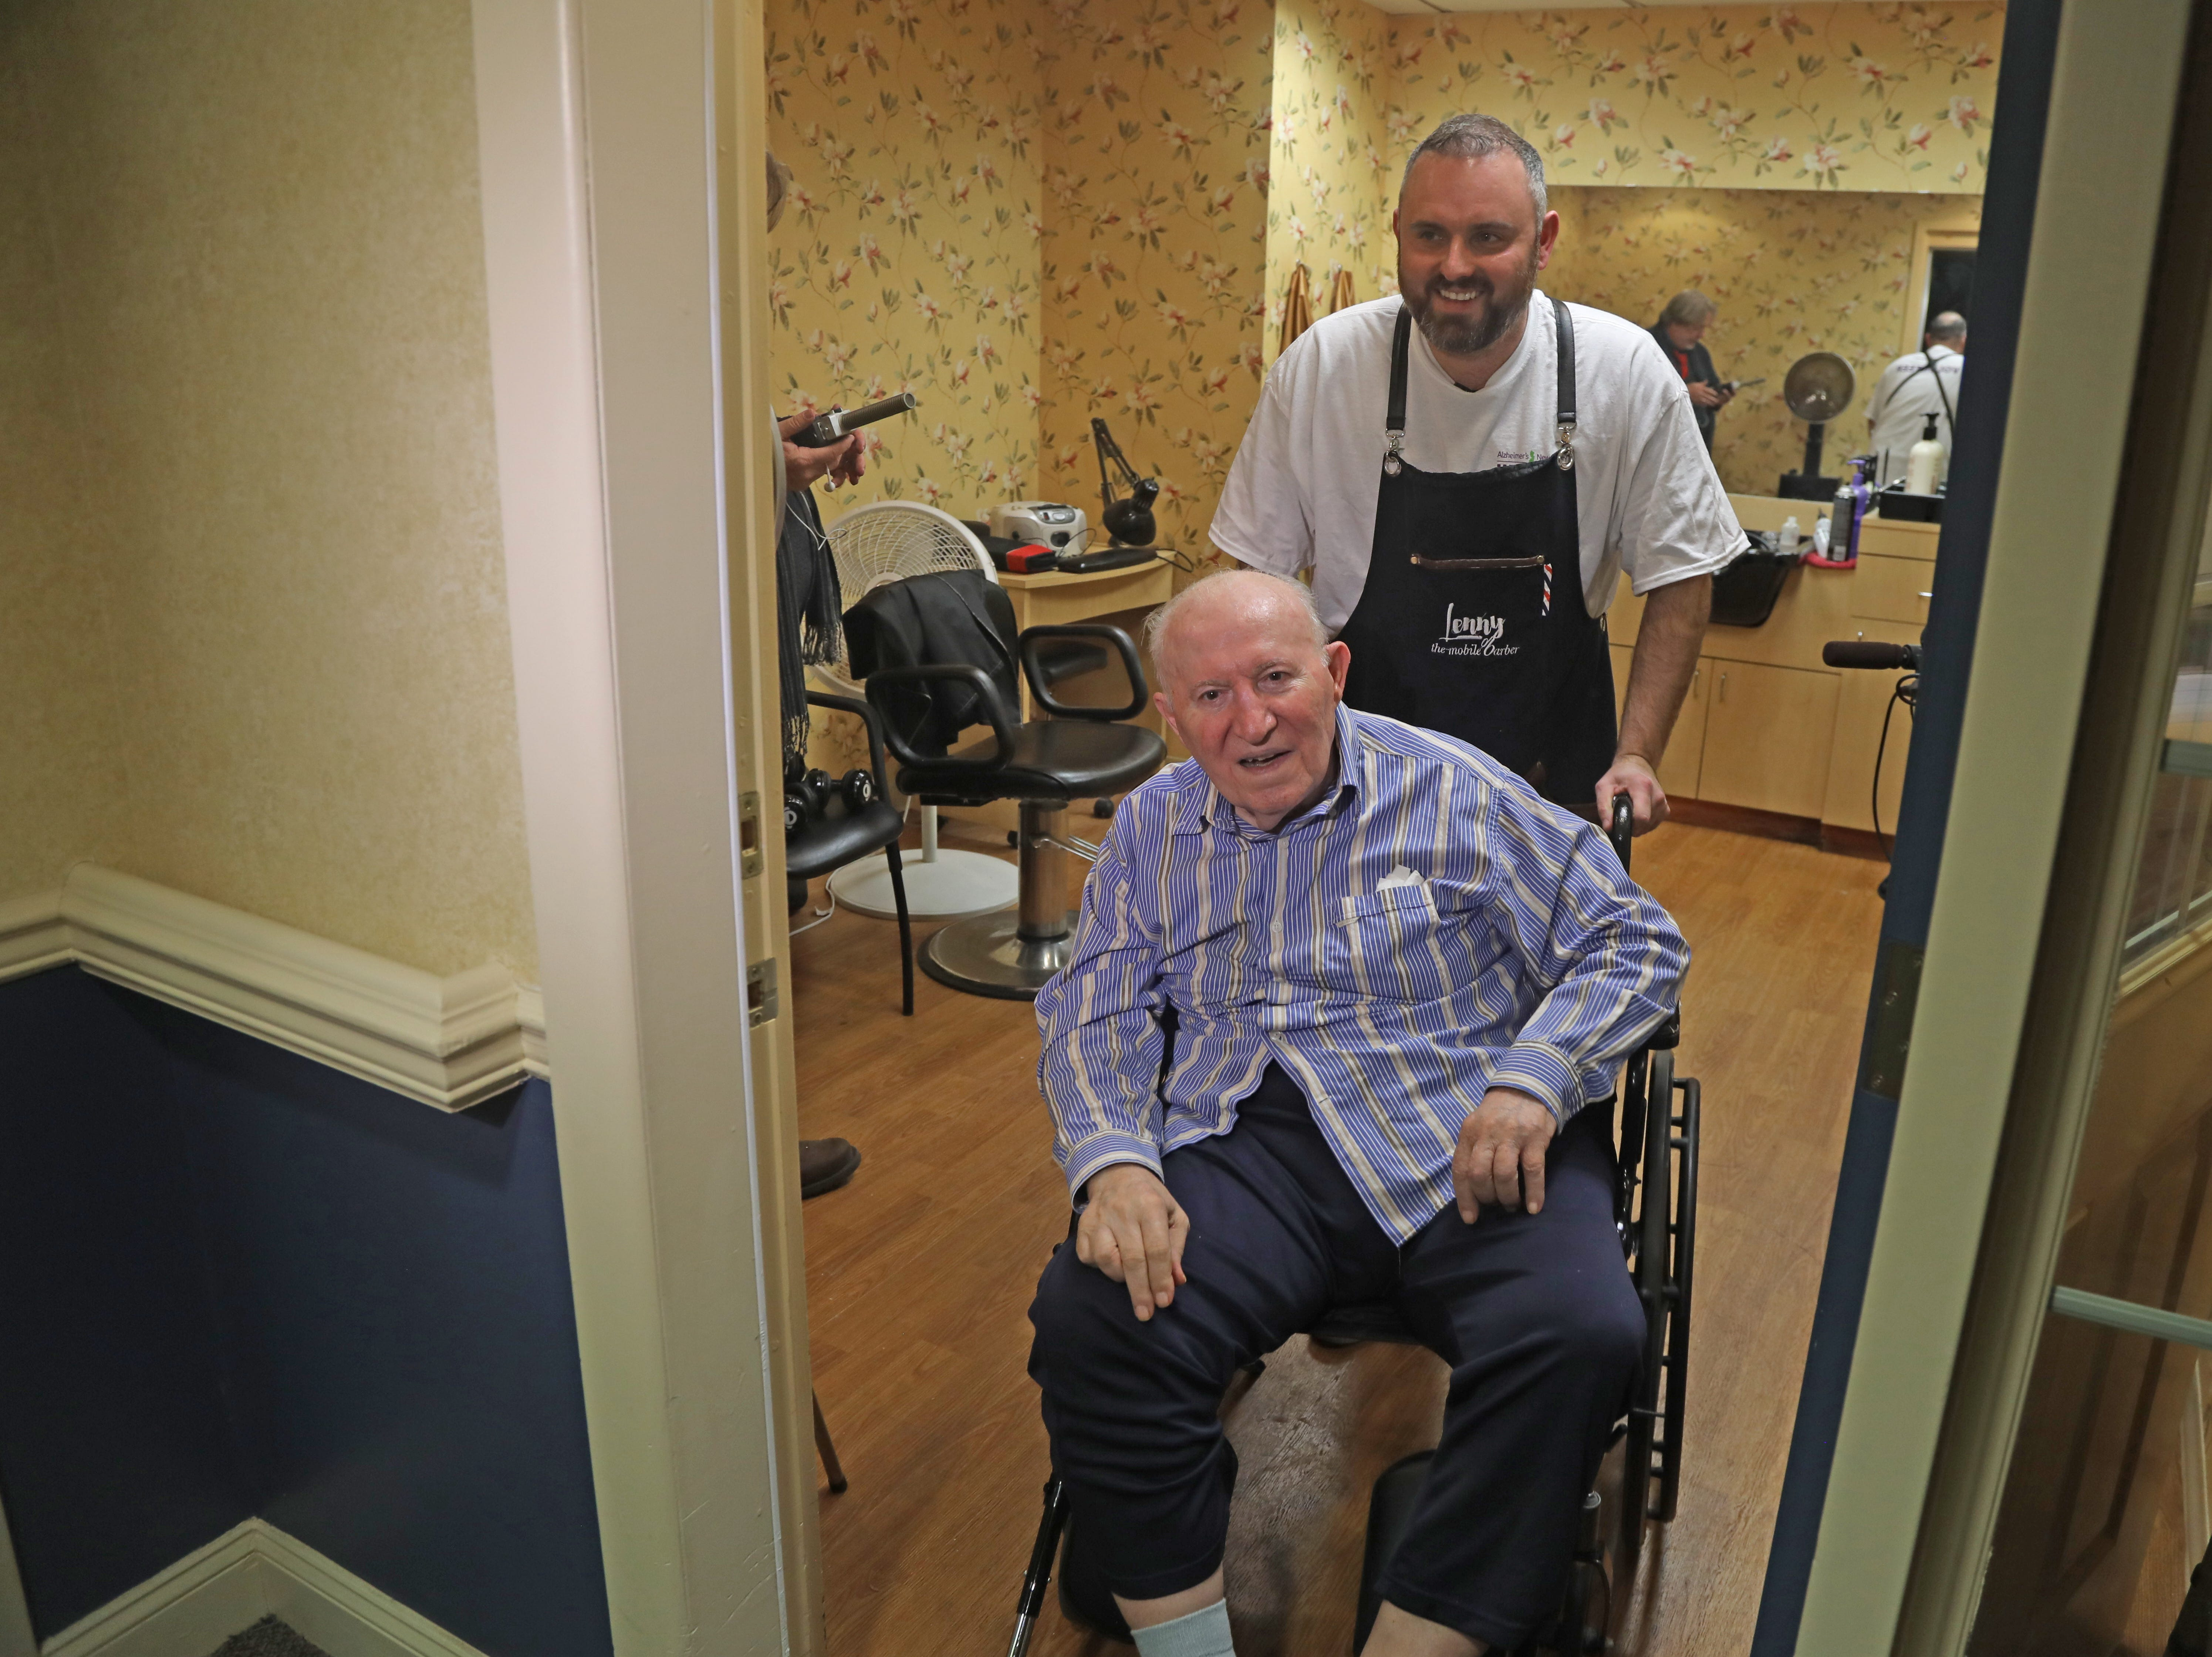 Lenny White, a barber from Northern Ireland, after giving a complimentary haircut to Constantine Soukas 83.  Soukas is a resident of The Chelsea of Montville, an assisted living facility in Montville Twp., NJ on January 3, 2019.